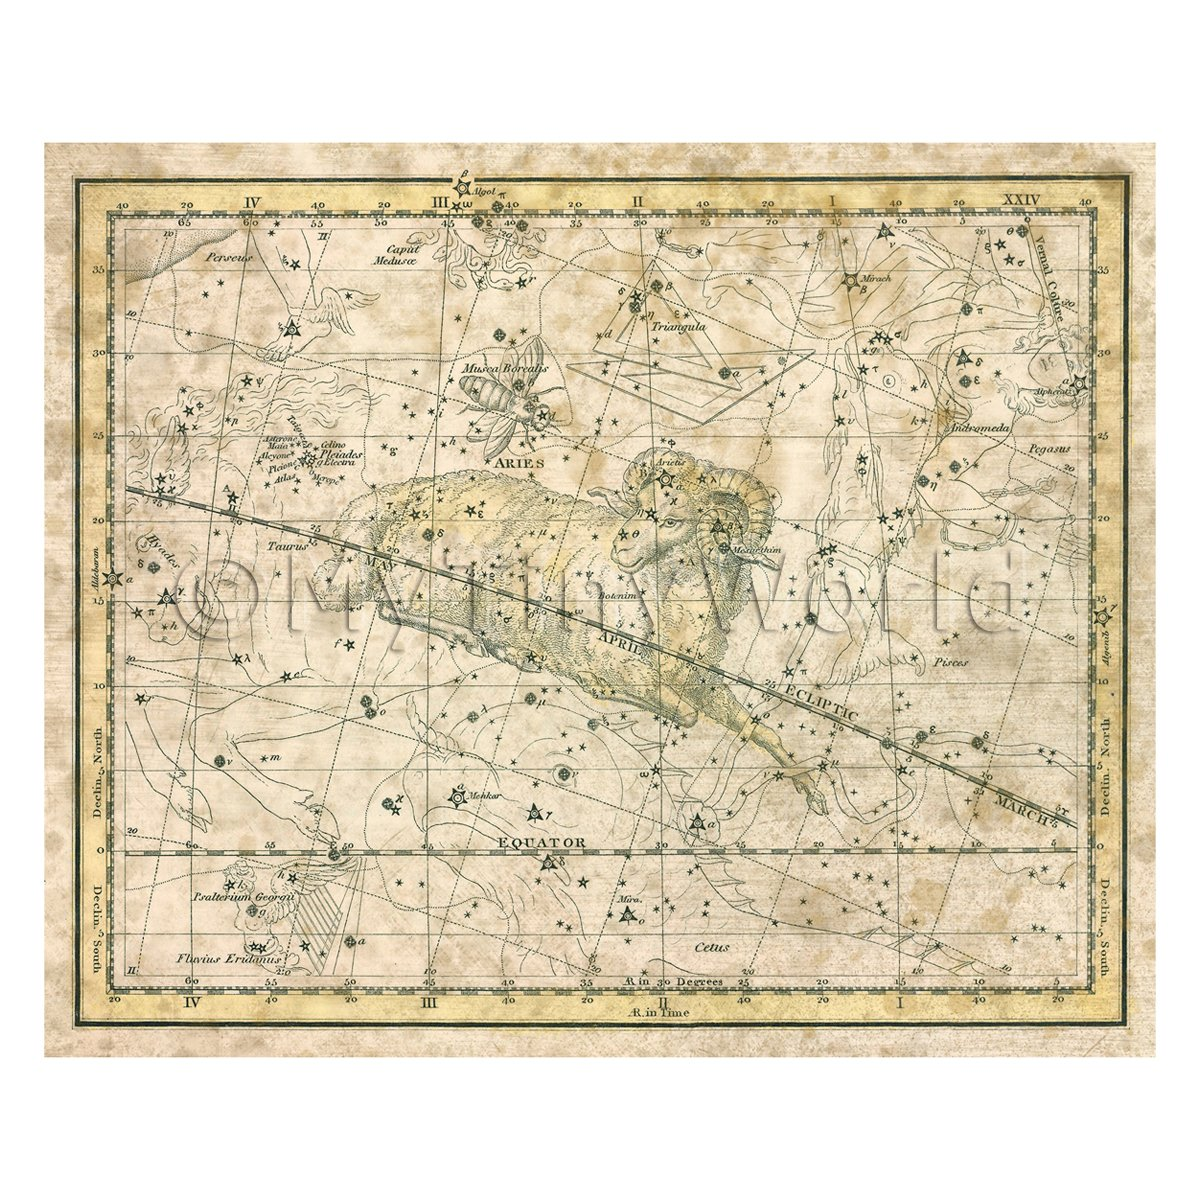 Dolls House Miniature Aged 1800s Star Map With Aries